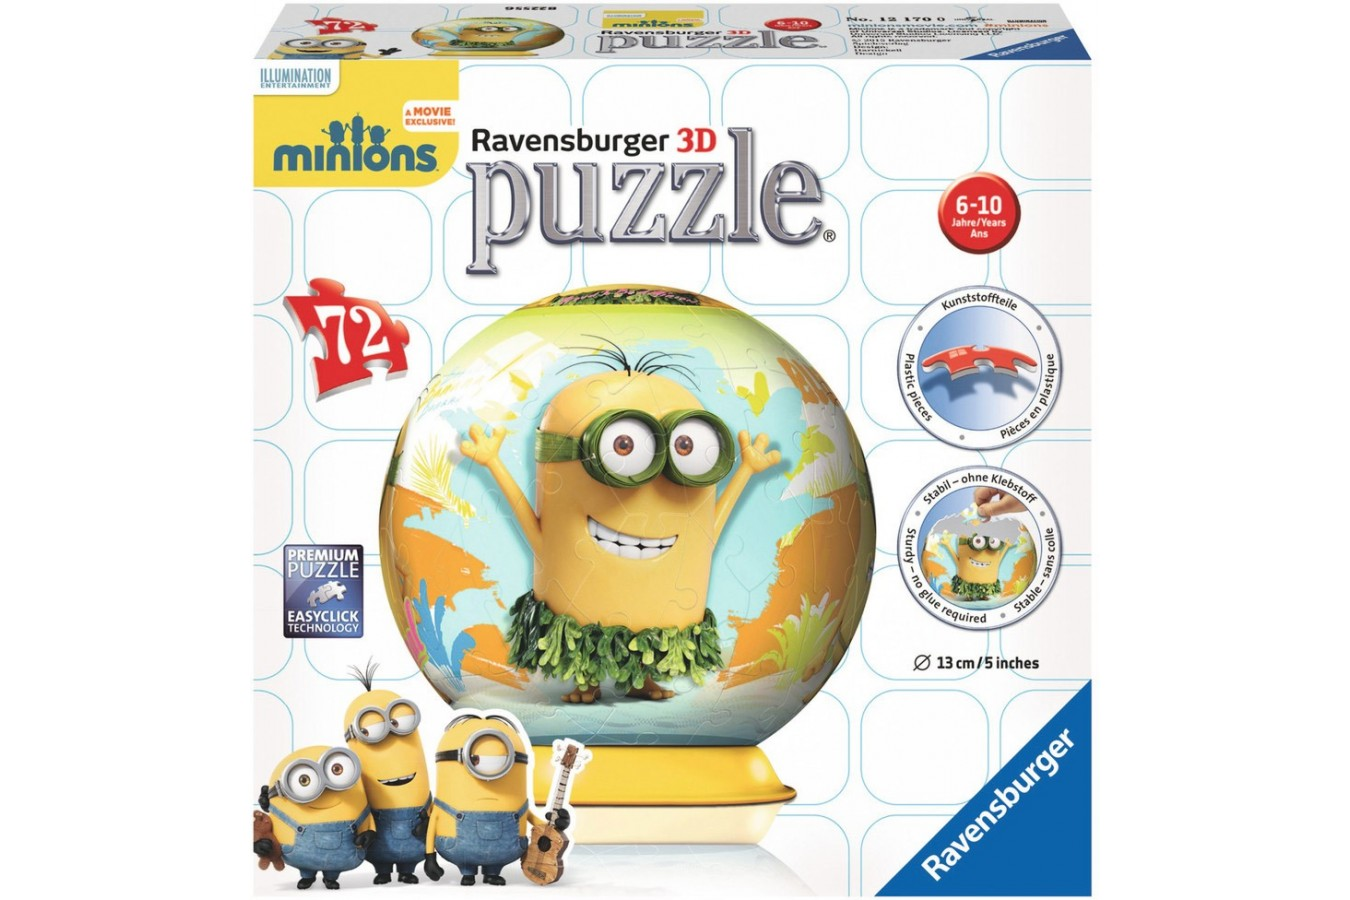 Puzzle glob Ravensburger - Minions, 72 piese (12170)